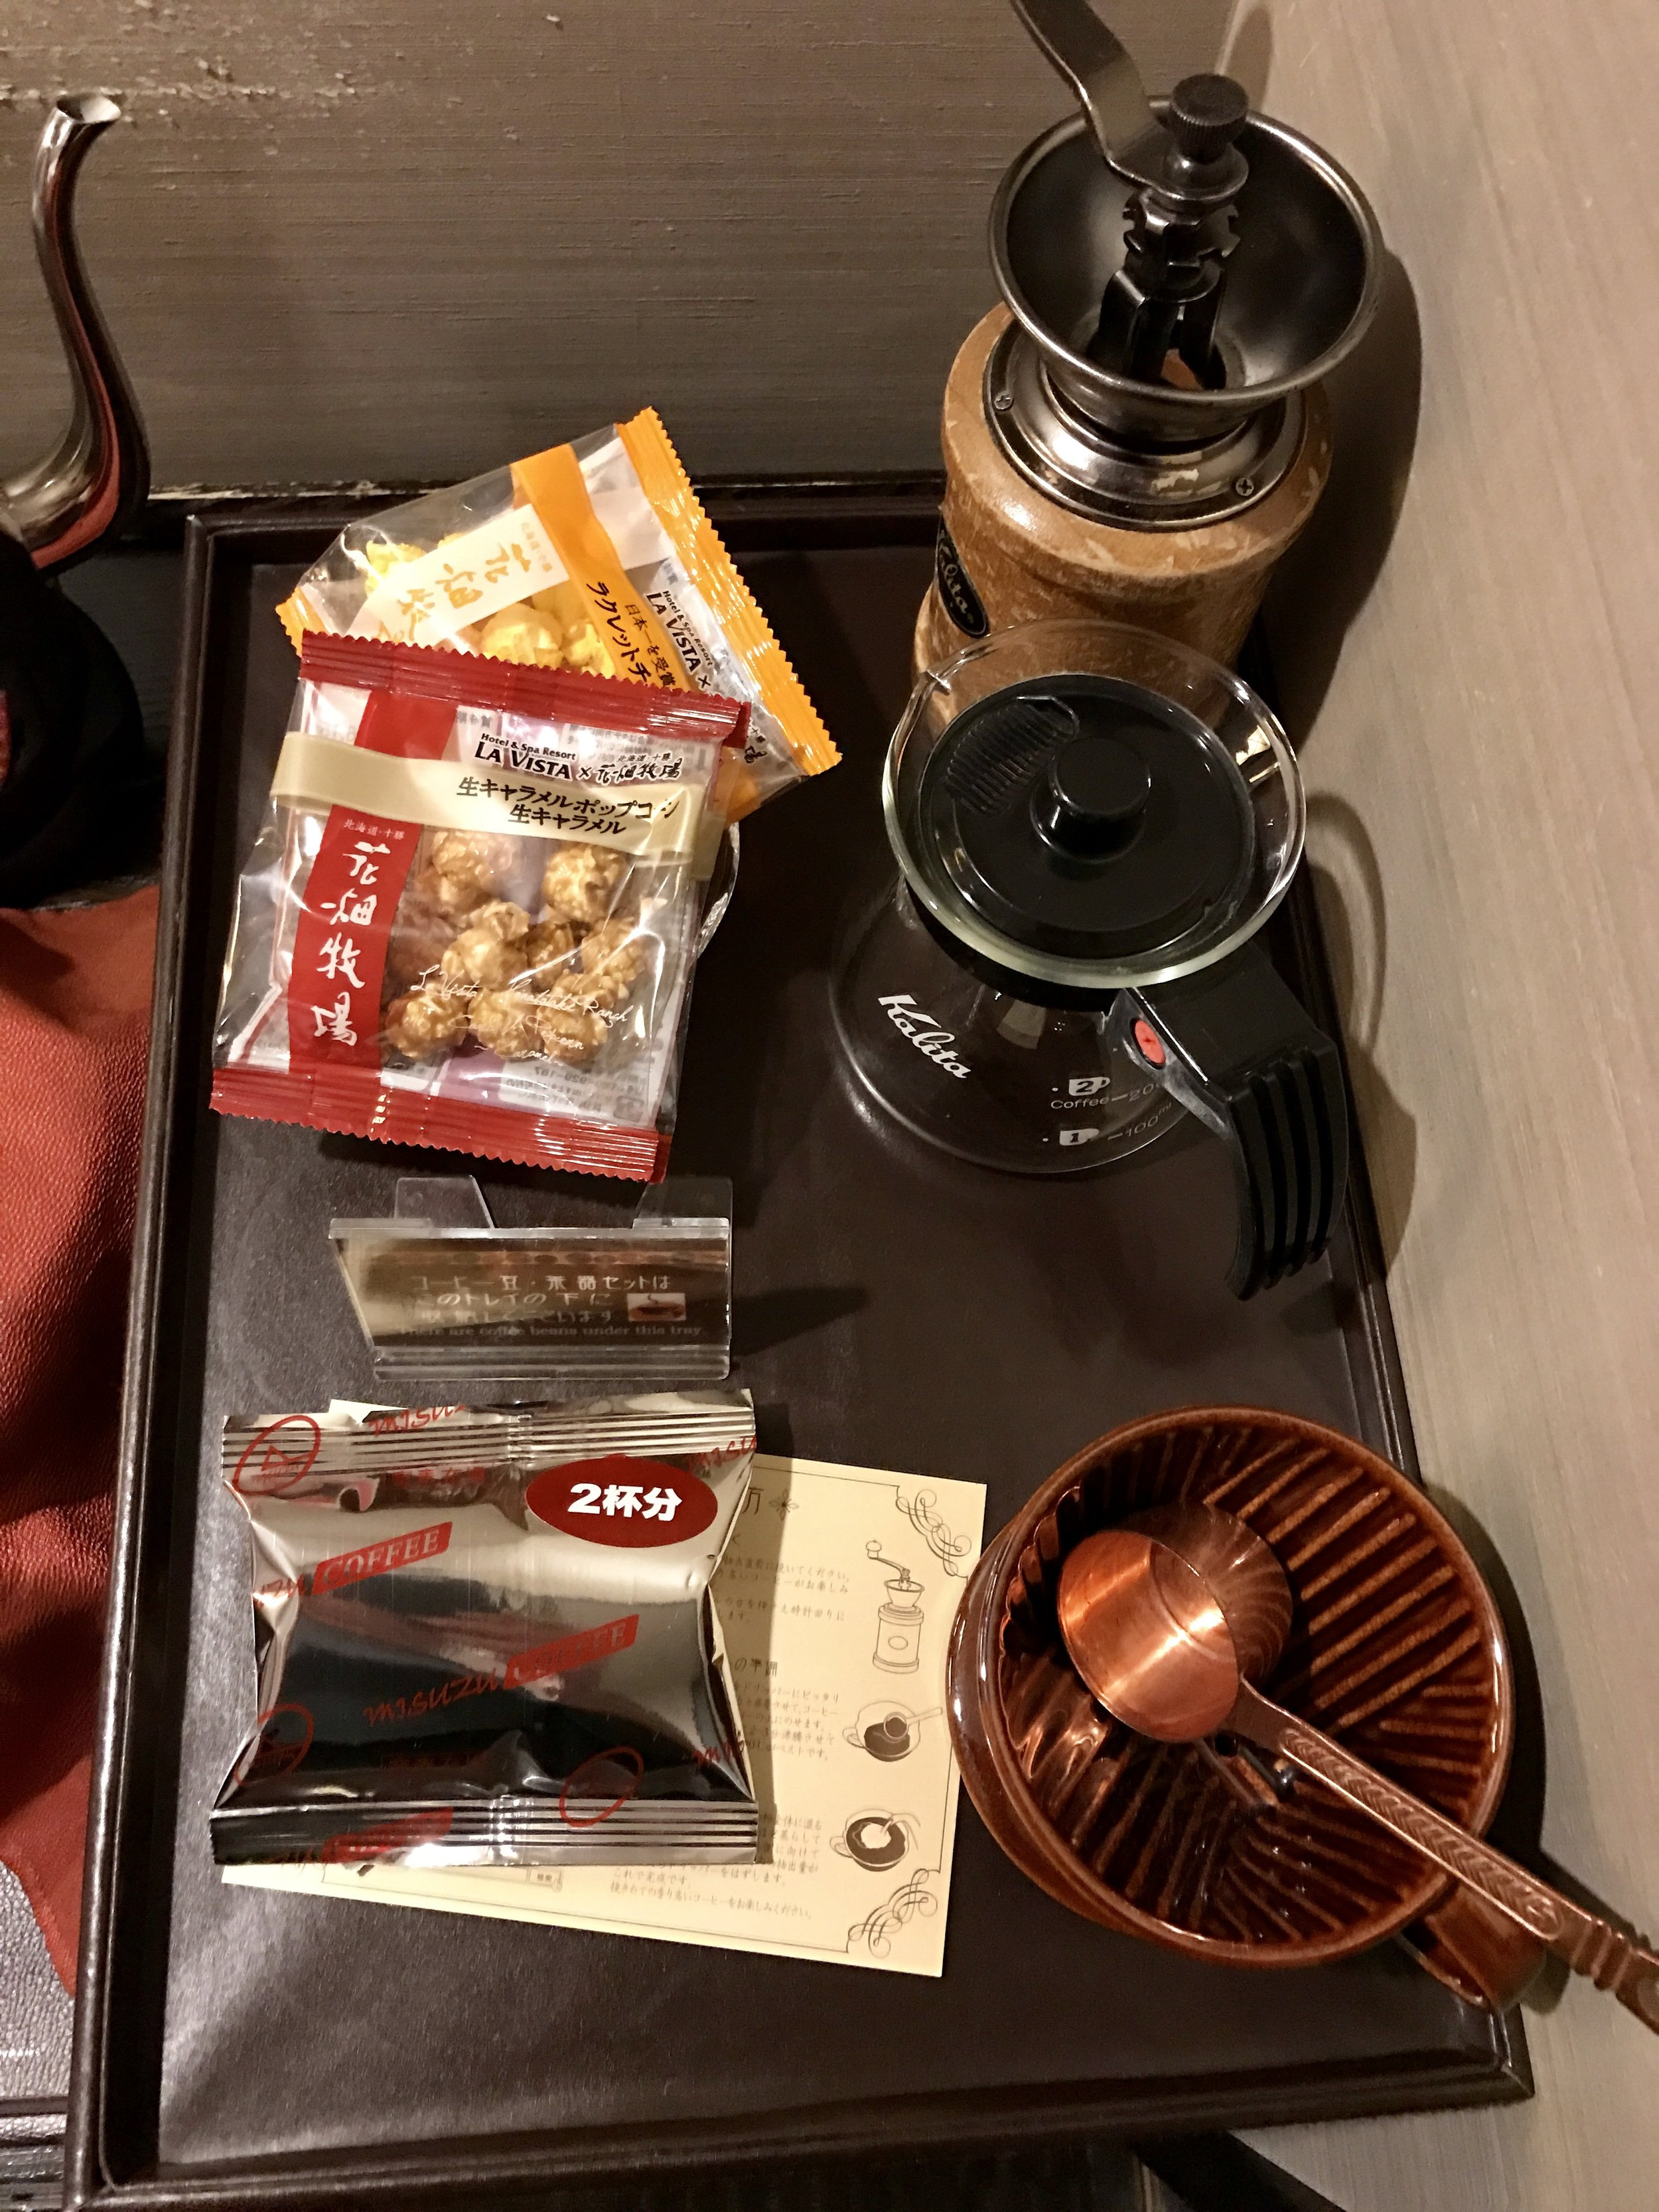 Complementary coffee beans, grinder and two kinds of popcorn.